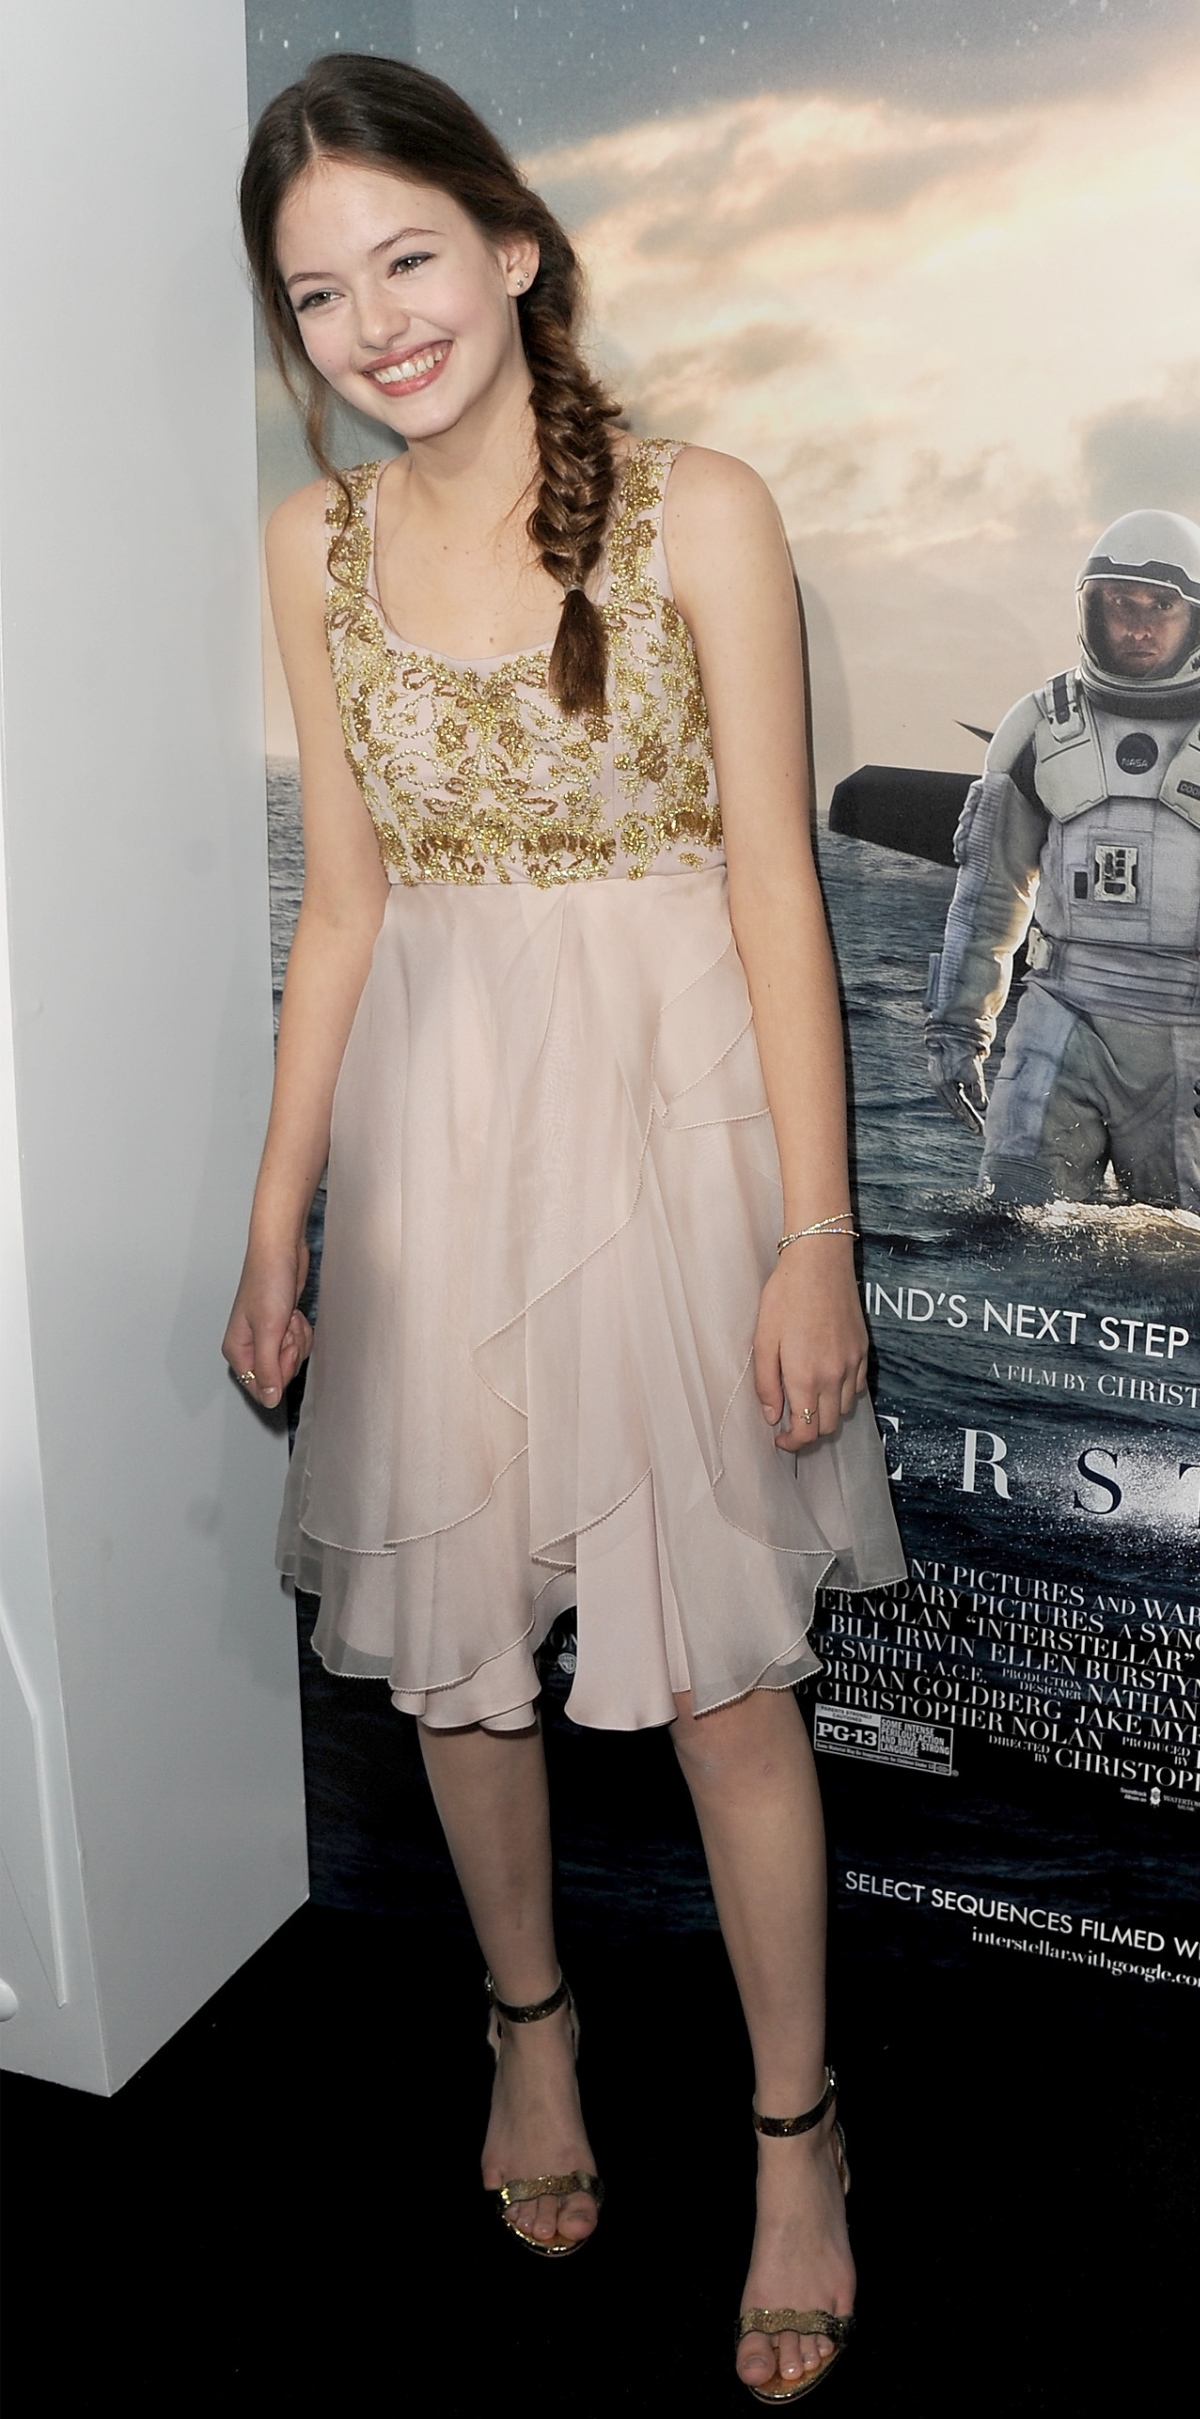 49 Hot Pictures Of Mackenzie Foy Whic Are Mind-Blowing